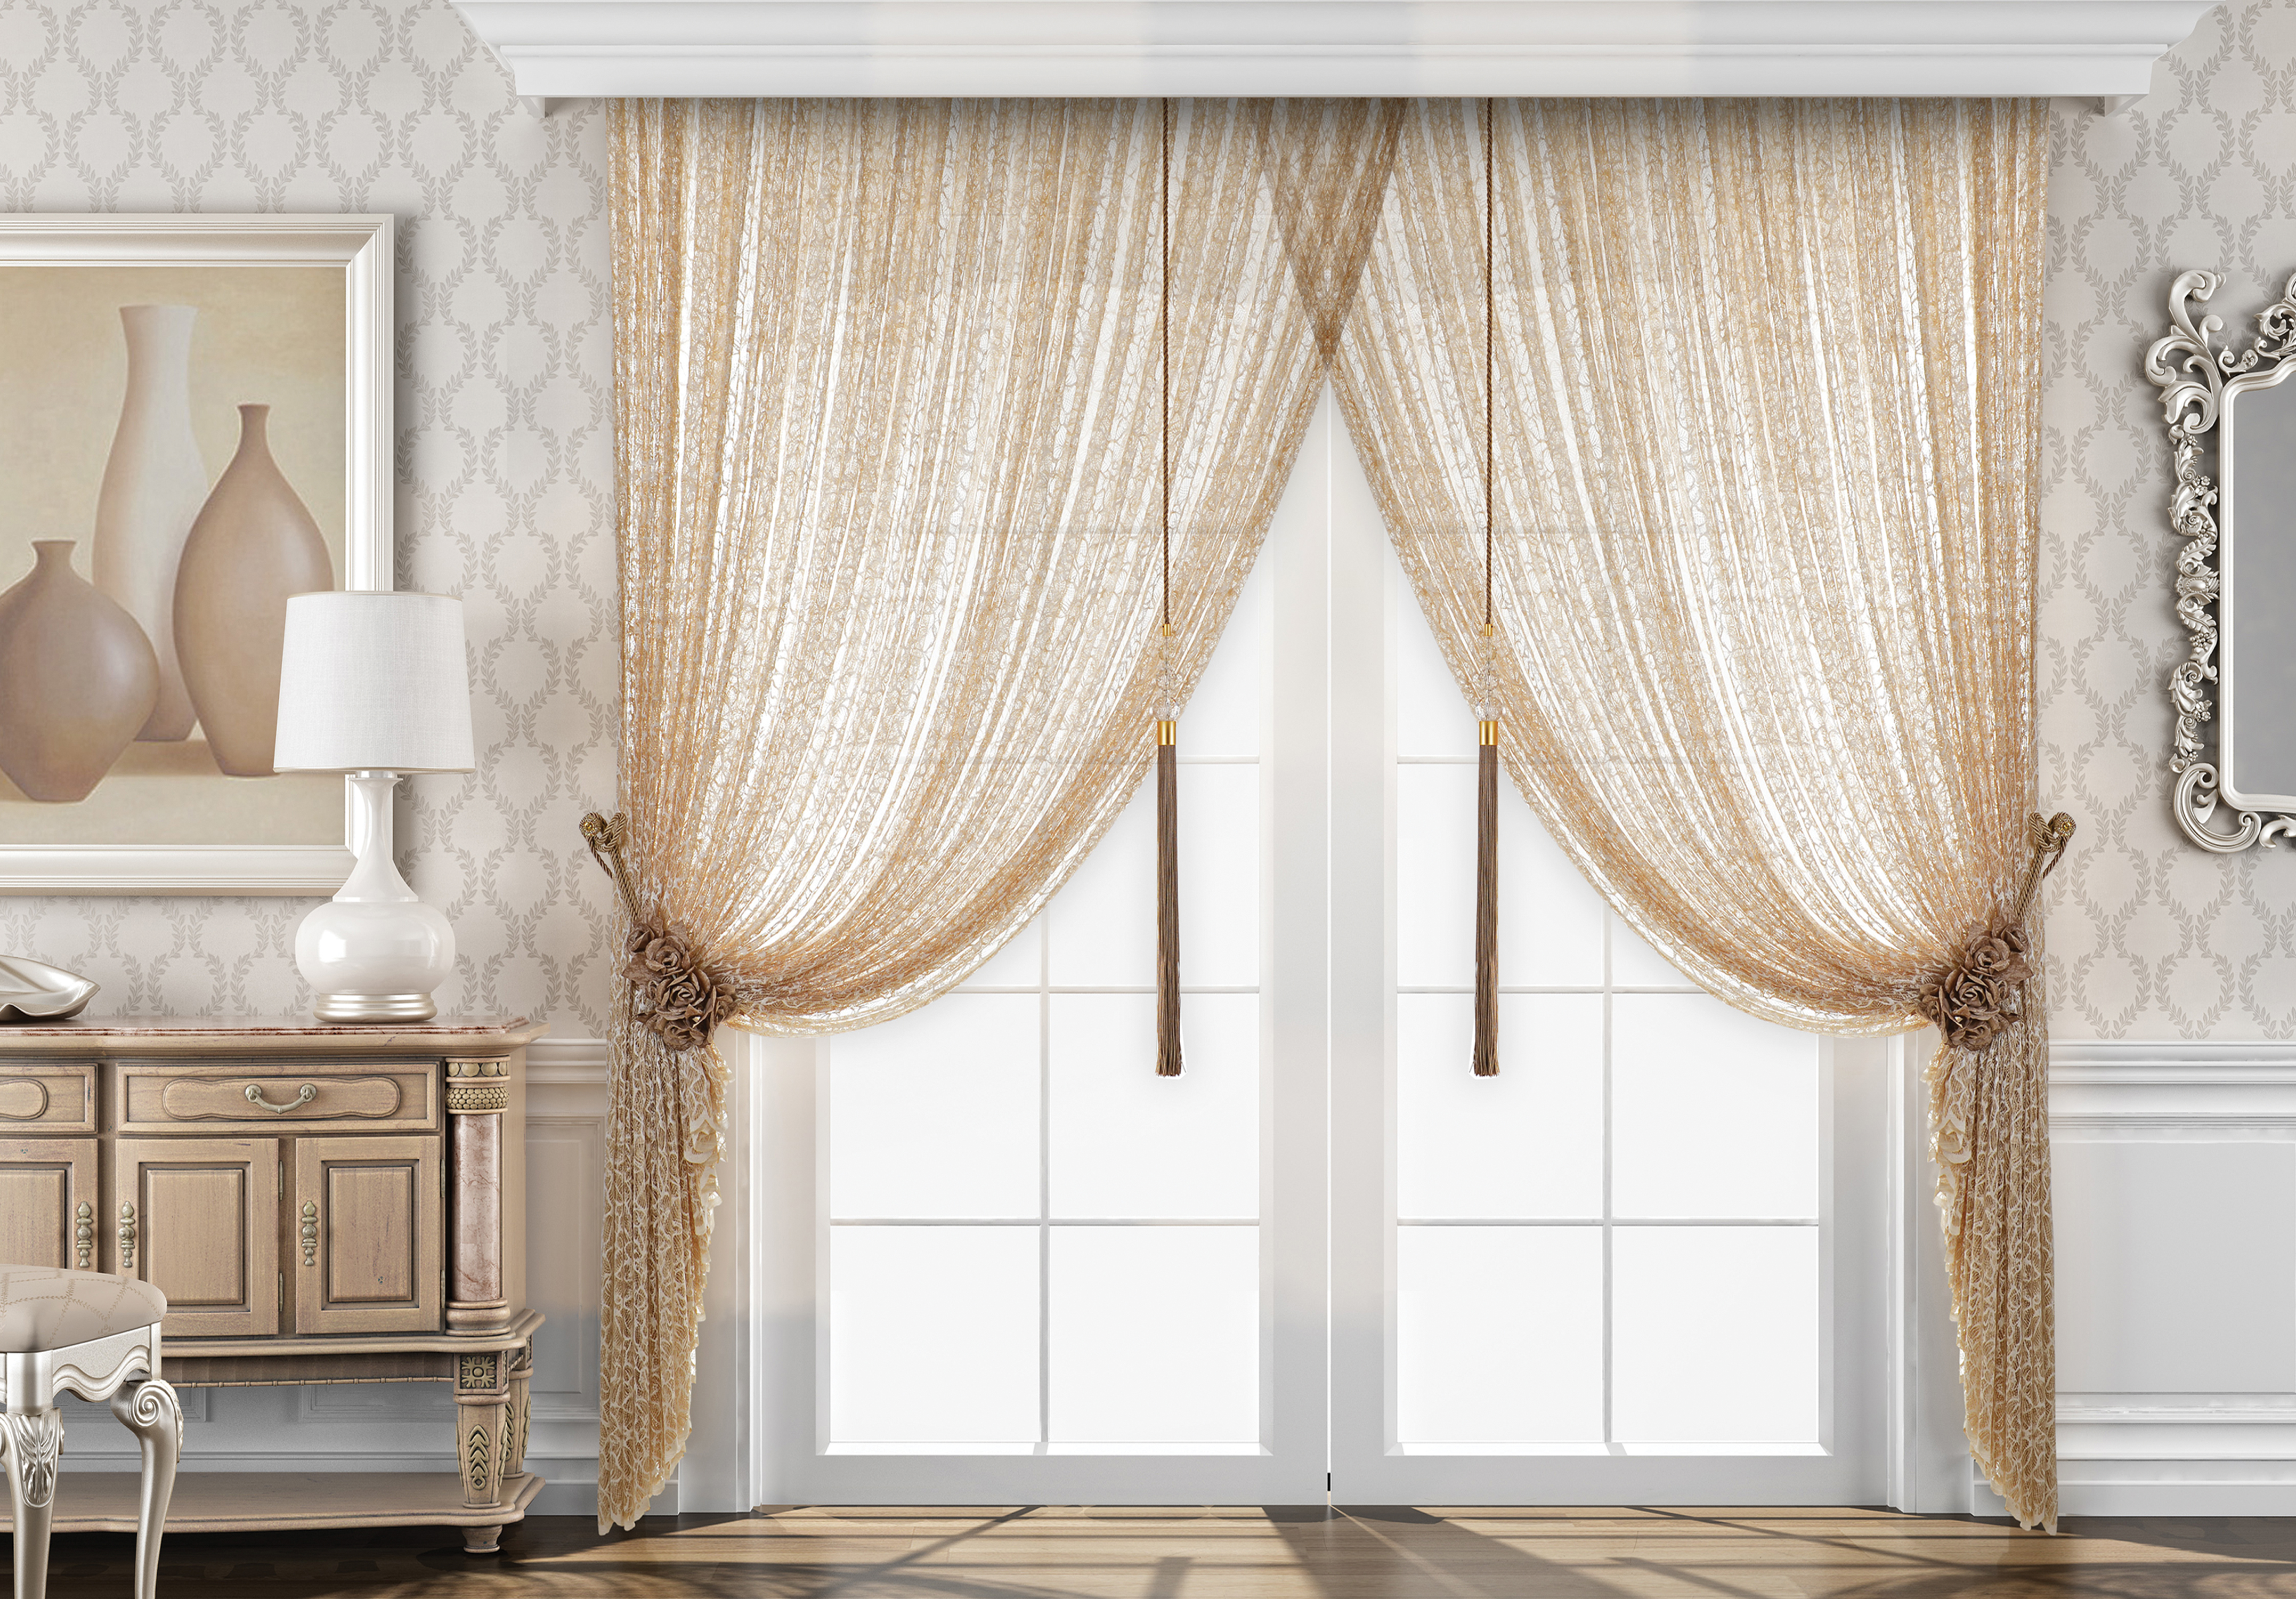 Statement piece curtains in a bedroom